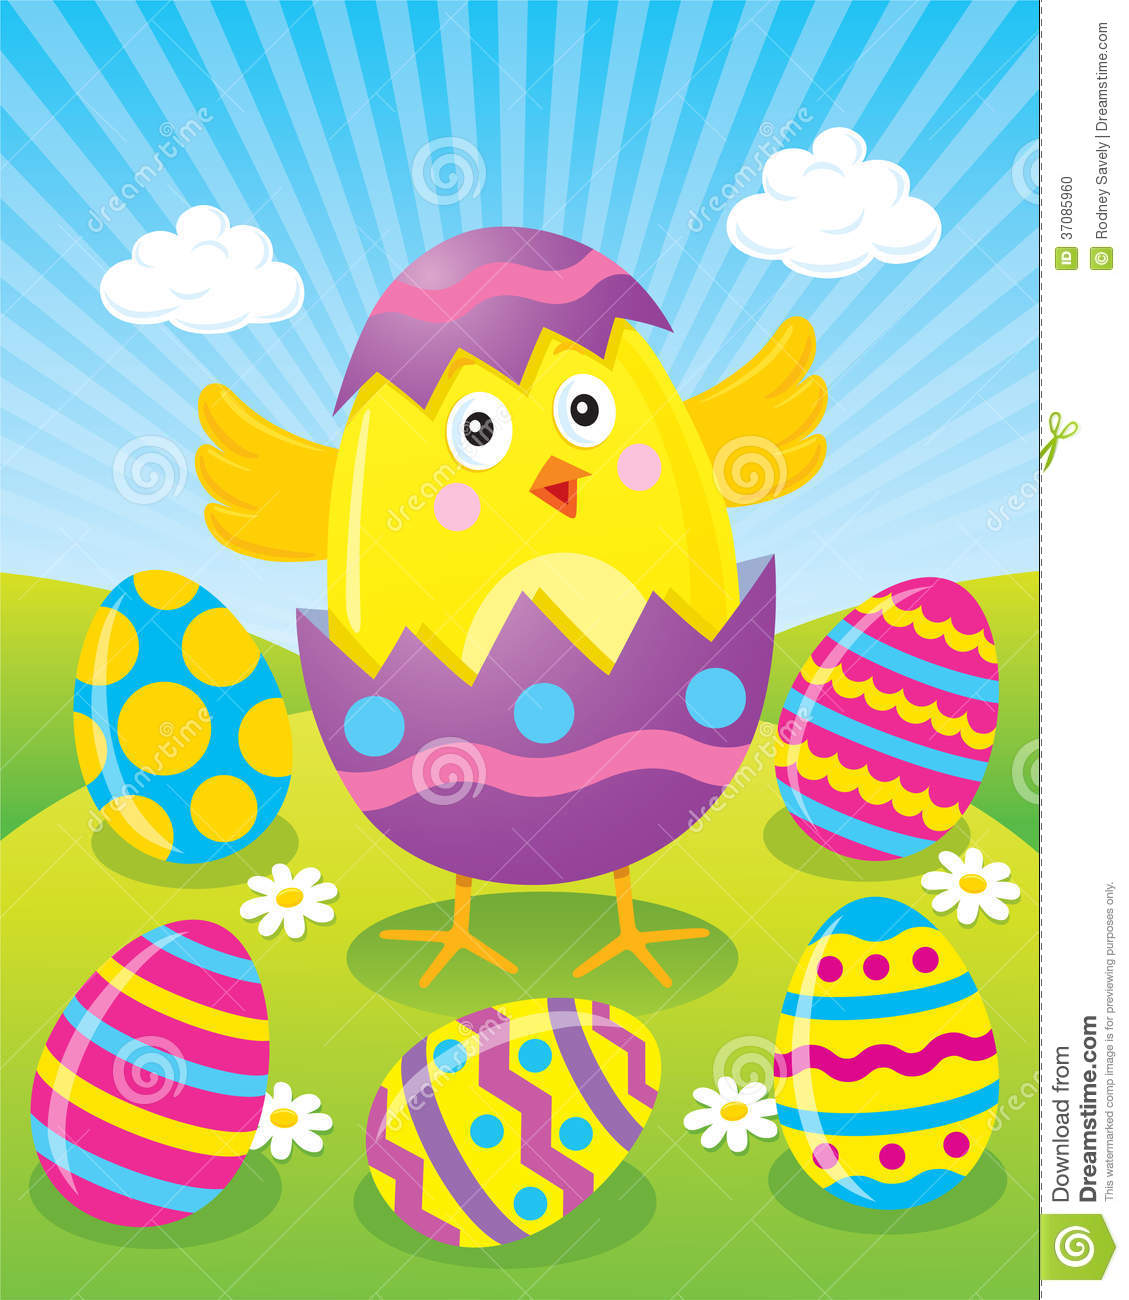 Easter Chick Hatching From Egg Stock Photo.